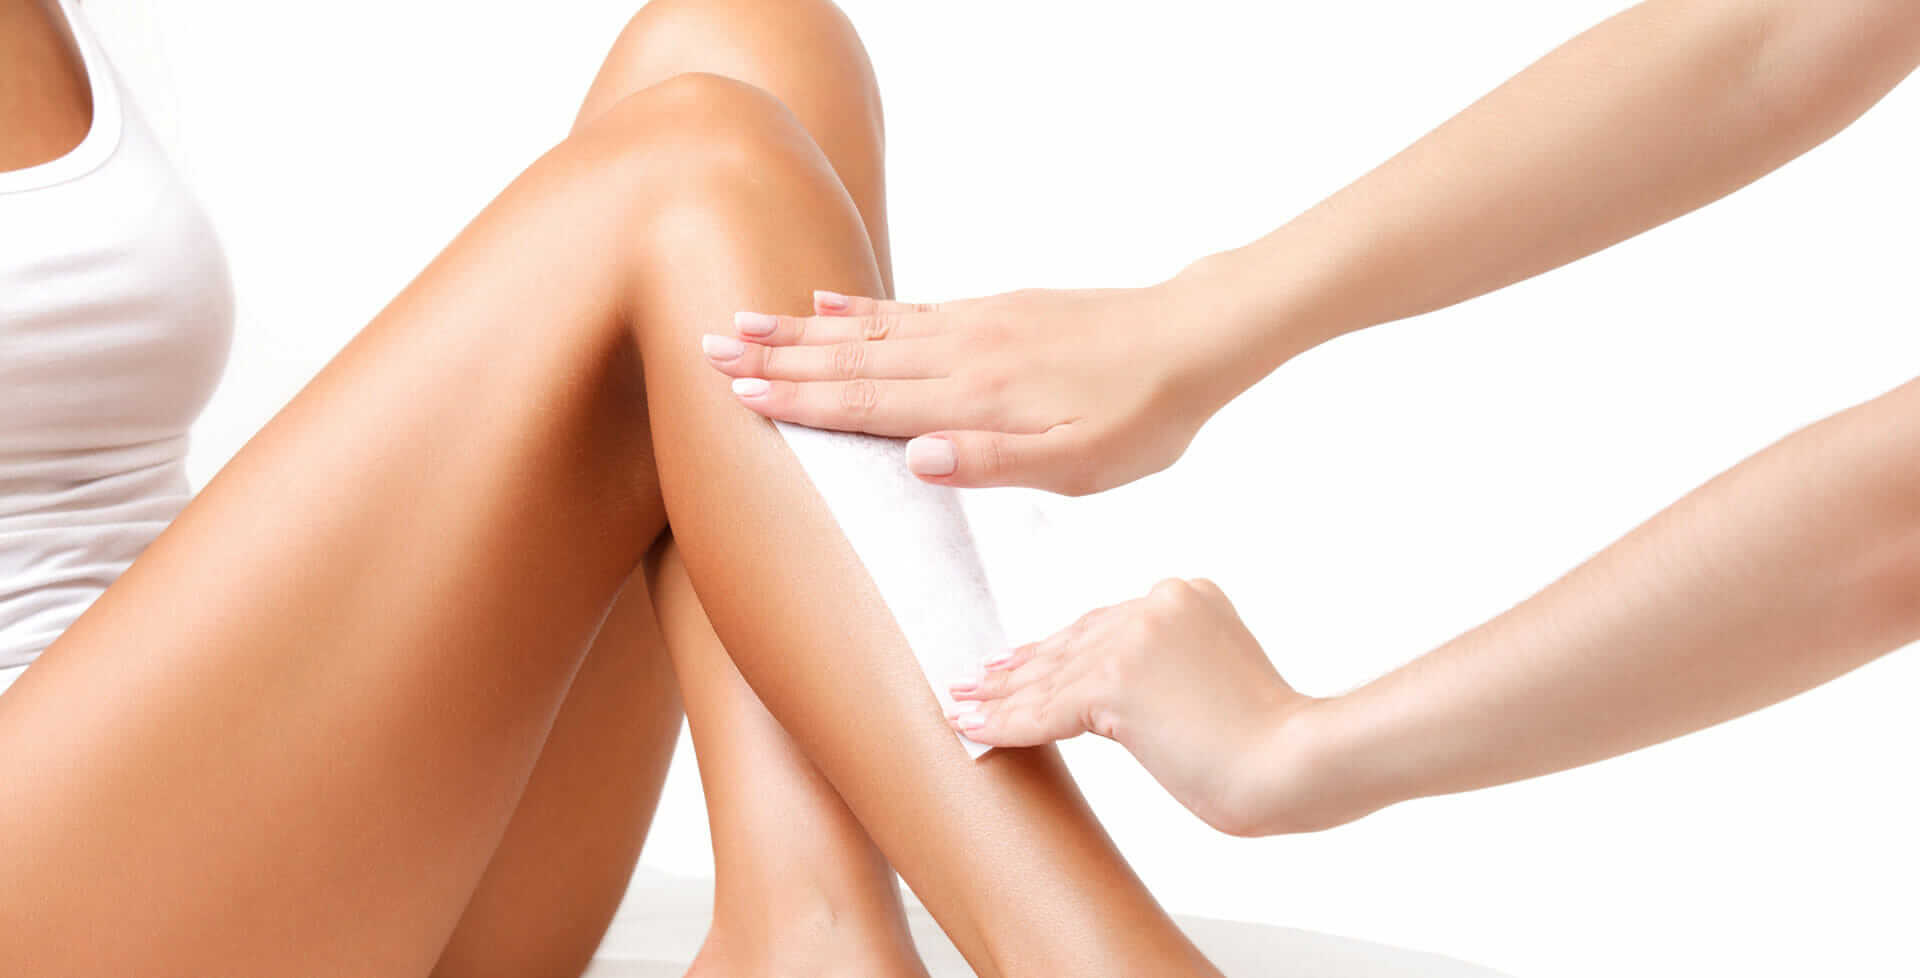 female-model-having-legs-waxed